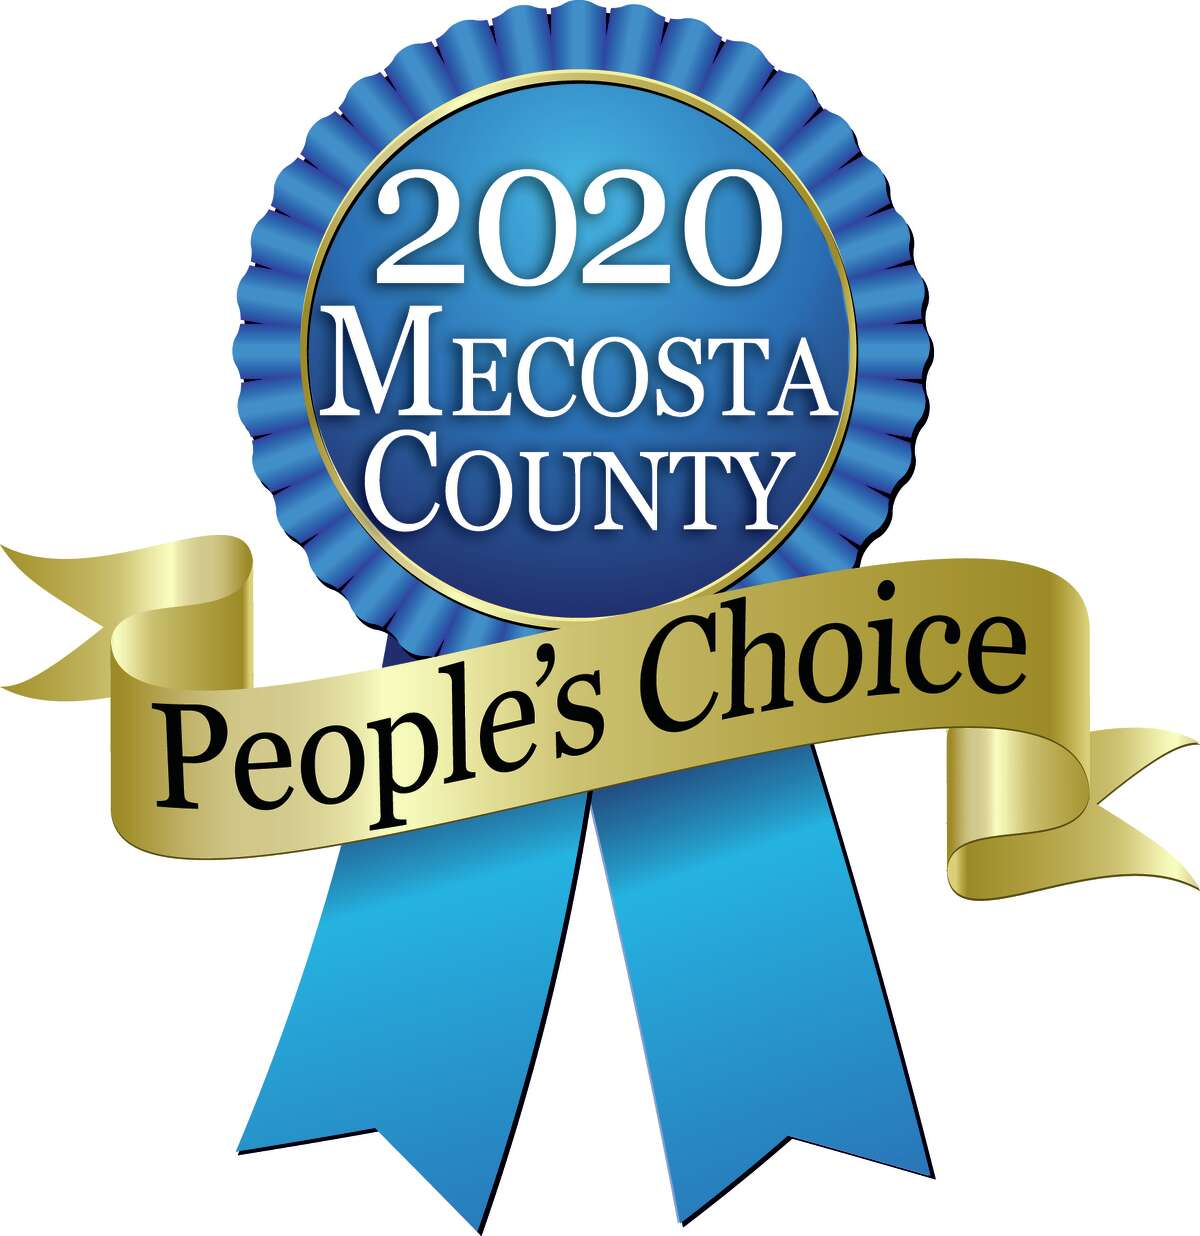 The nomination period for this year's Mecosta County People's Choice Awards is underway and runs through 5 p.m. on Nov. 29.